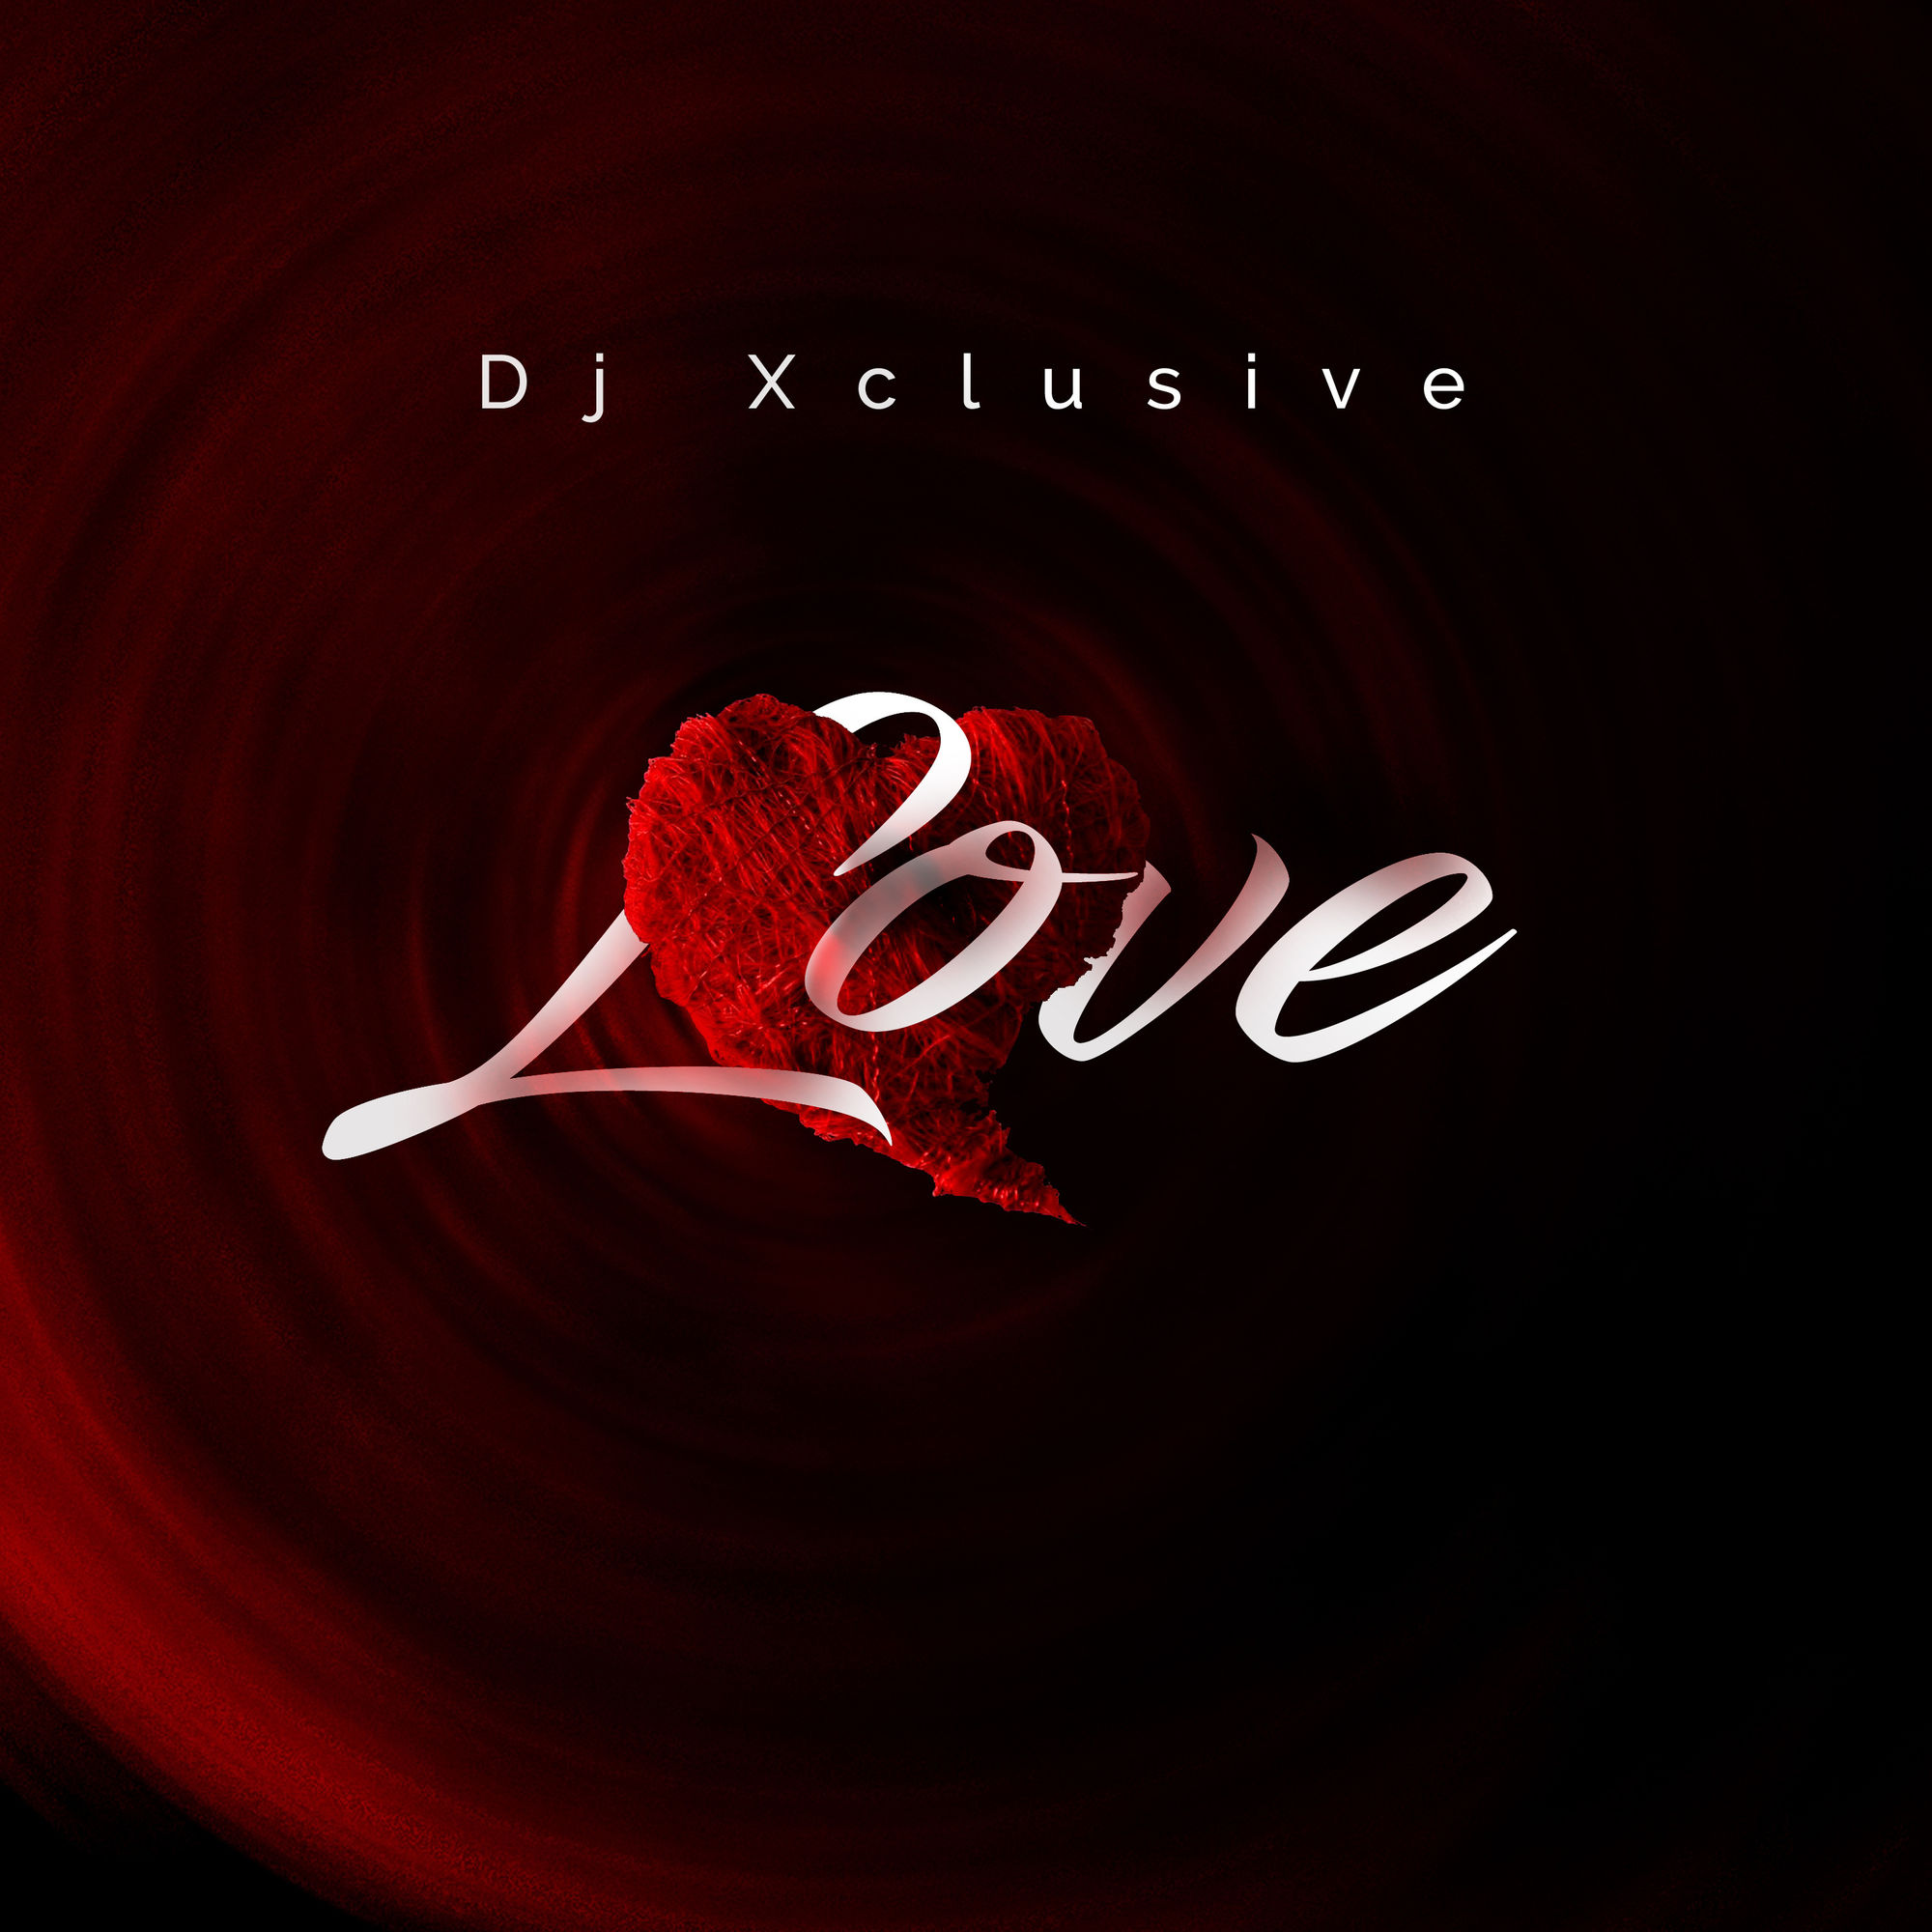 """01 Love mp3 image - Listen to DJ Xclusive's New Song """"Love"""" [Audio]"""